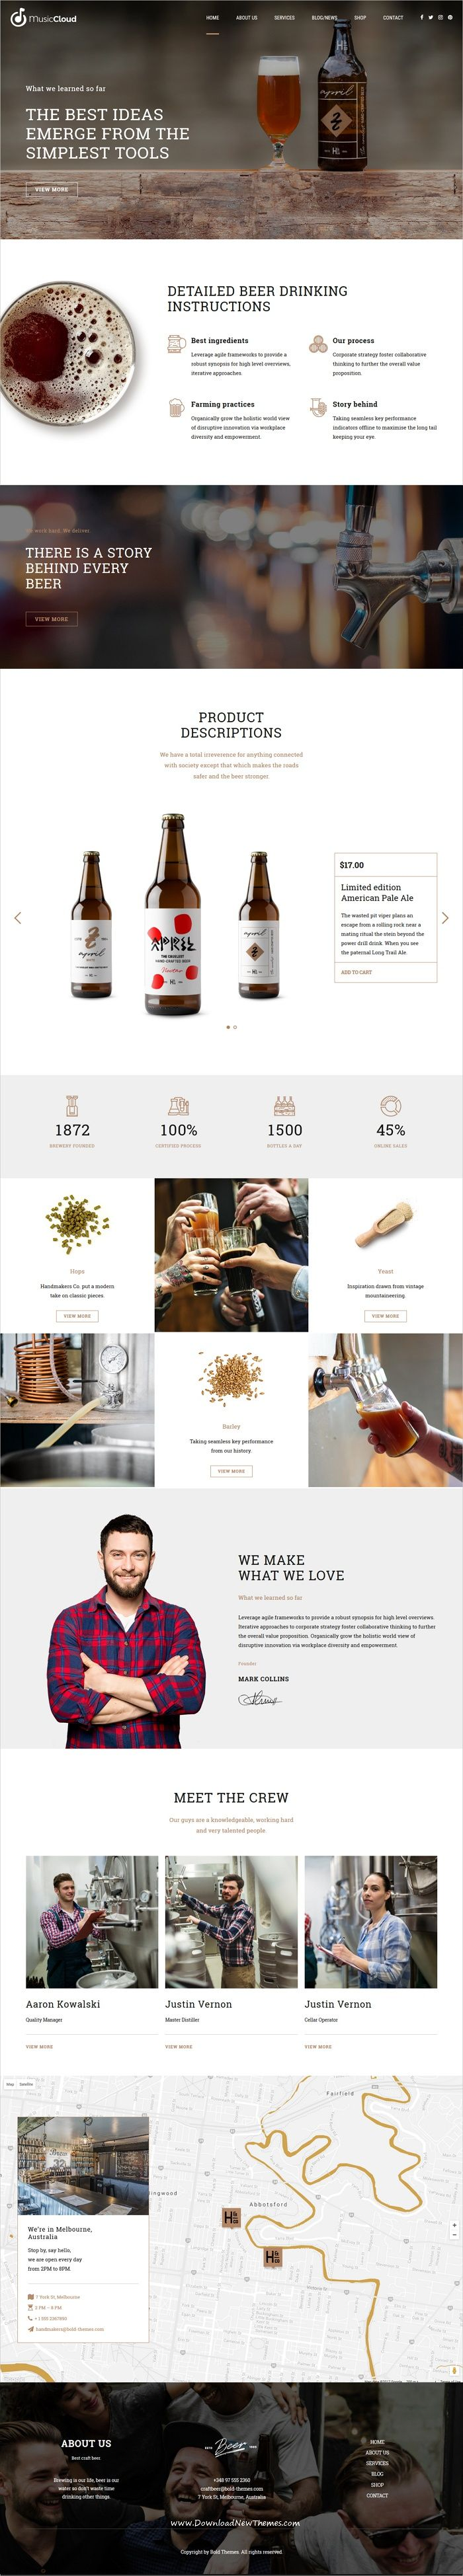 Craft Beer is clean and modern design 6in1 responsive #WordPress theme for #brewery, #beer house, pub or #liquor shop eCommerce website download now..